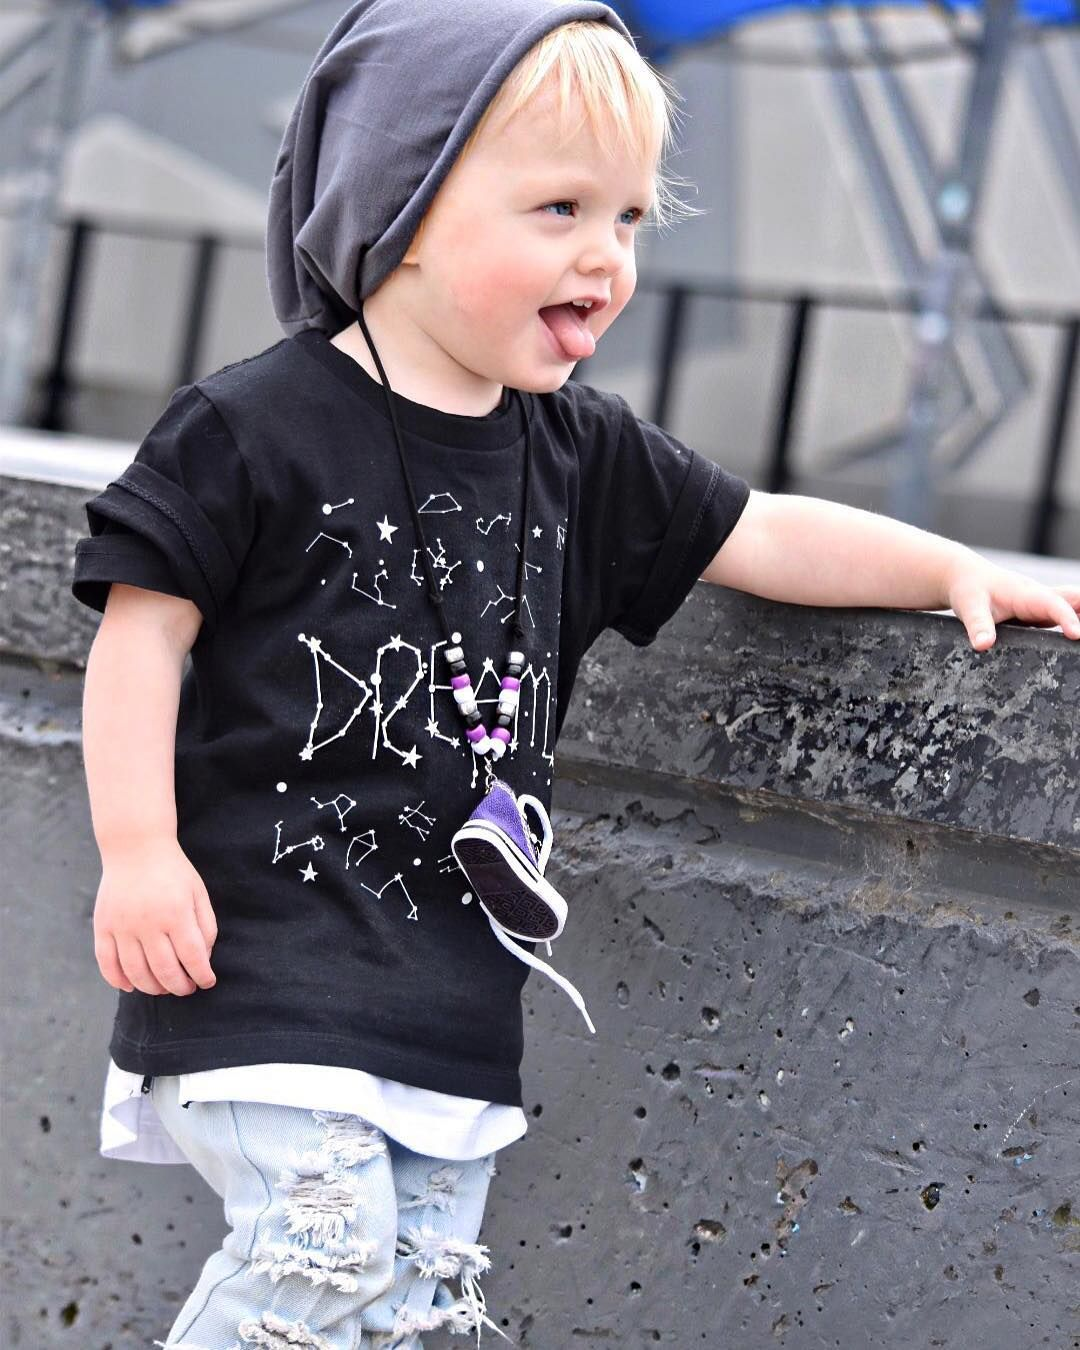 48e116f3 It's time for Dreams lovely Kiara @ki.ki_baby_fashion wears out  Constellations Dream tee very few stock of this tee available in store now  tap link in bio ...